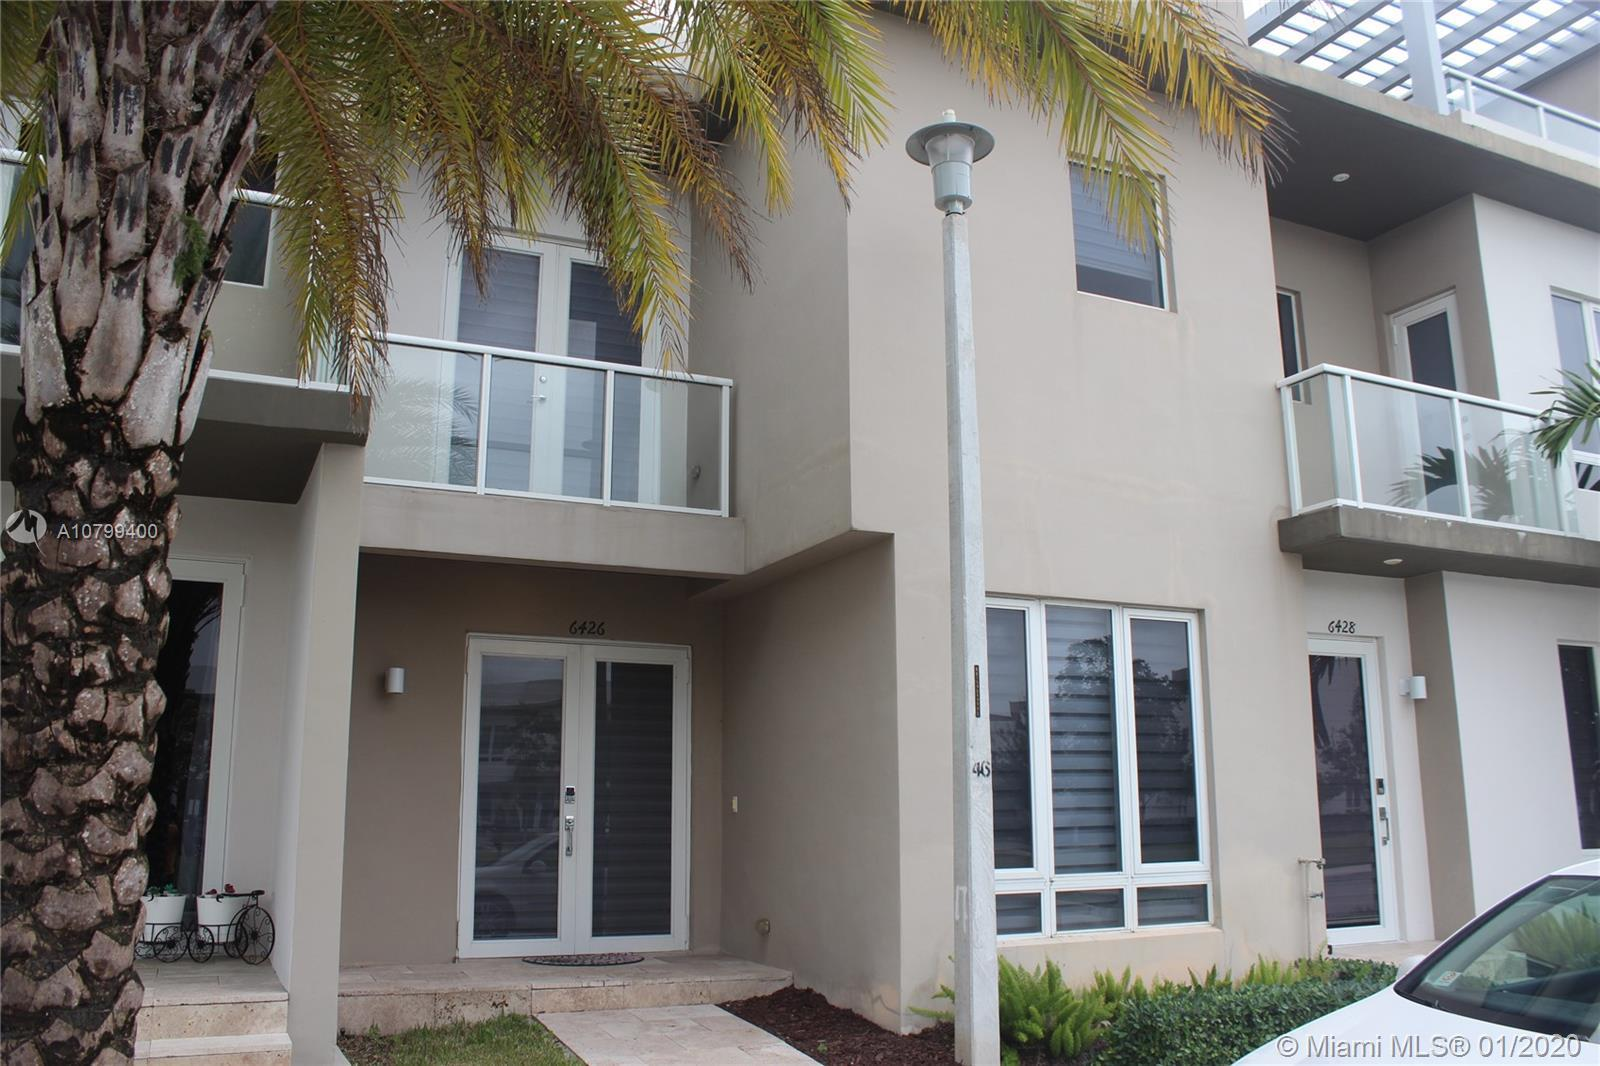 BEAUTUFUL 4 BEDROOMS 3 BATH COSMO CHIC 2 - STORY TOWNHOUSE AT LANDMARK DORAL, MODERN CONCEPT, NEW DE